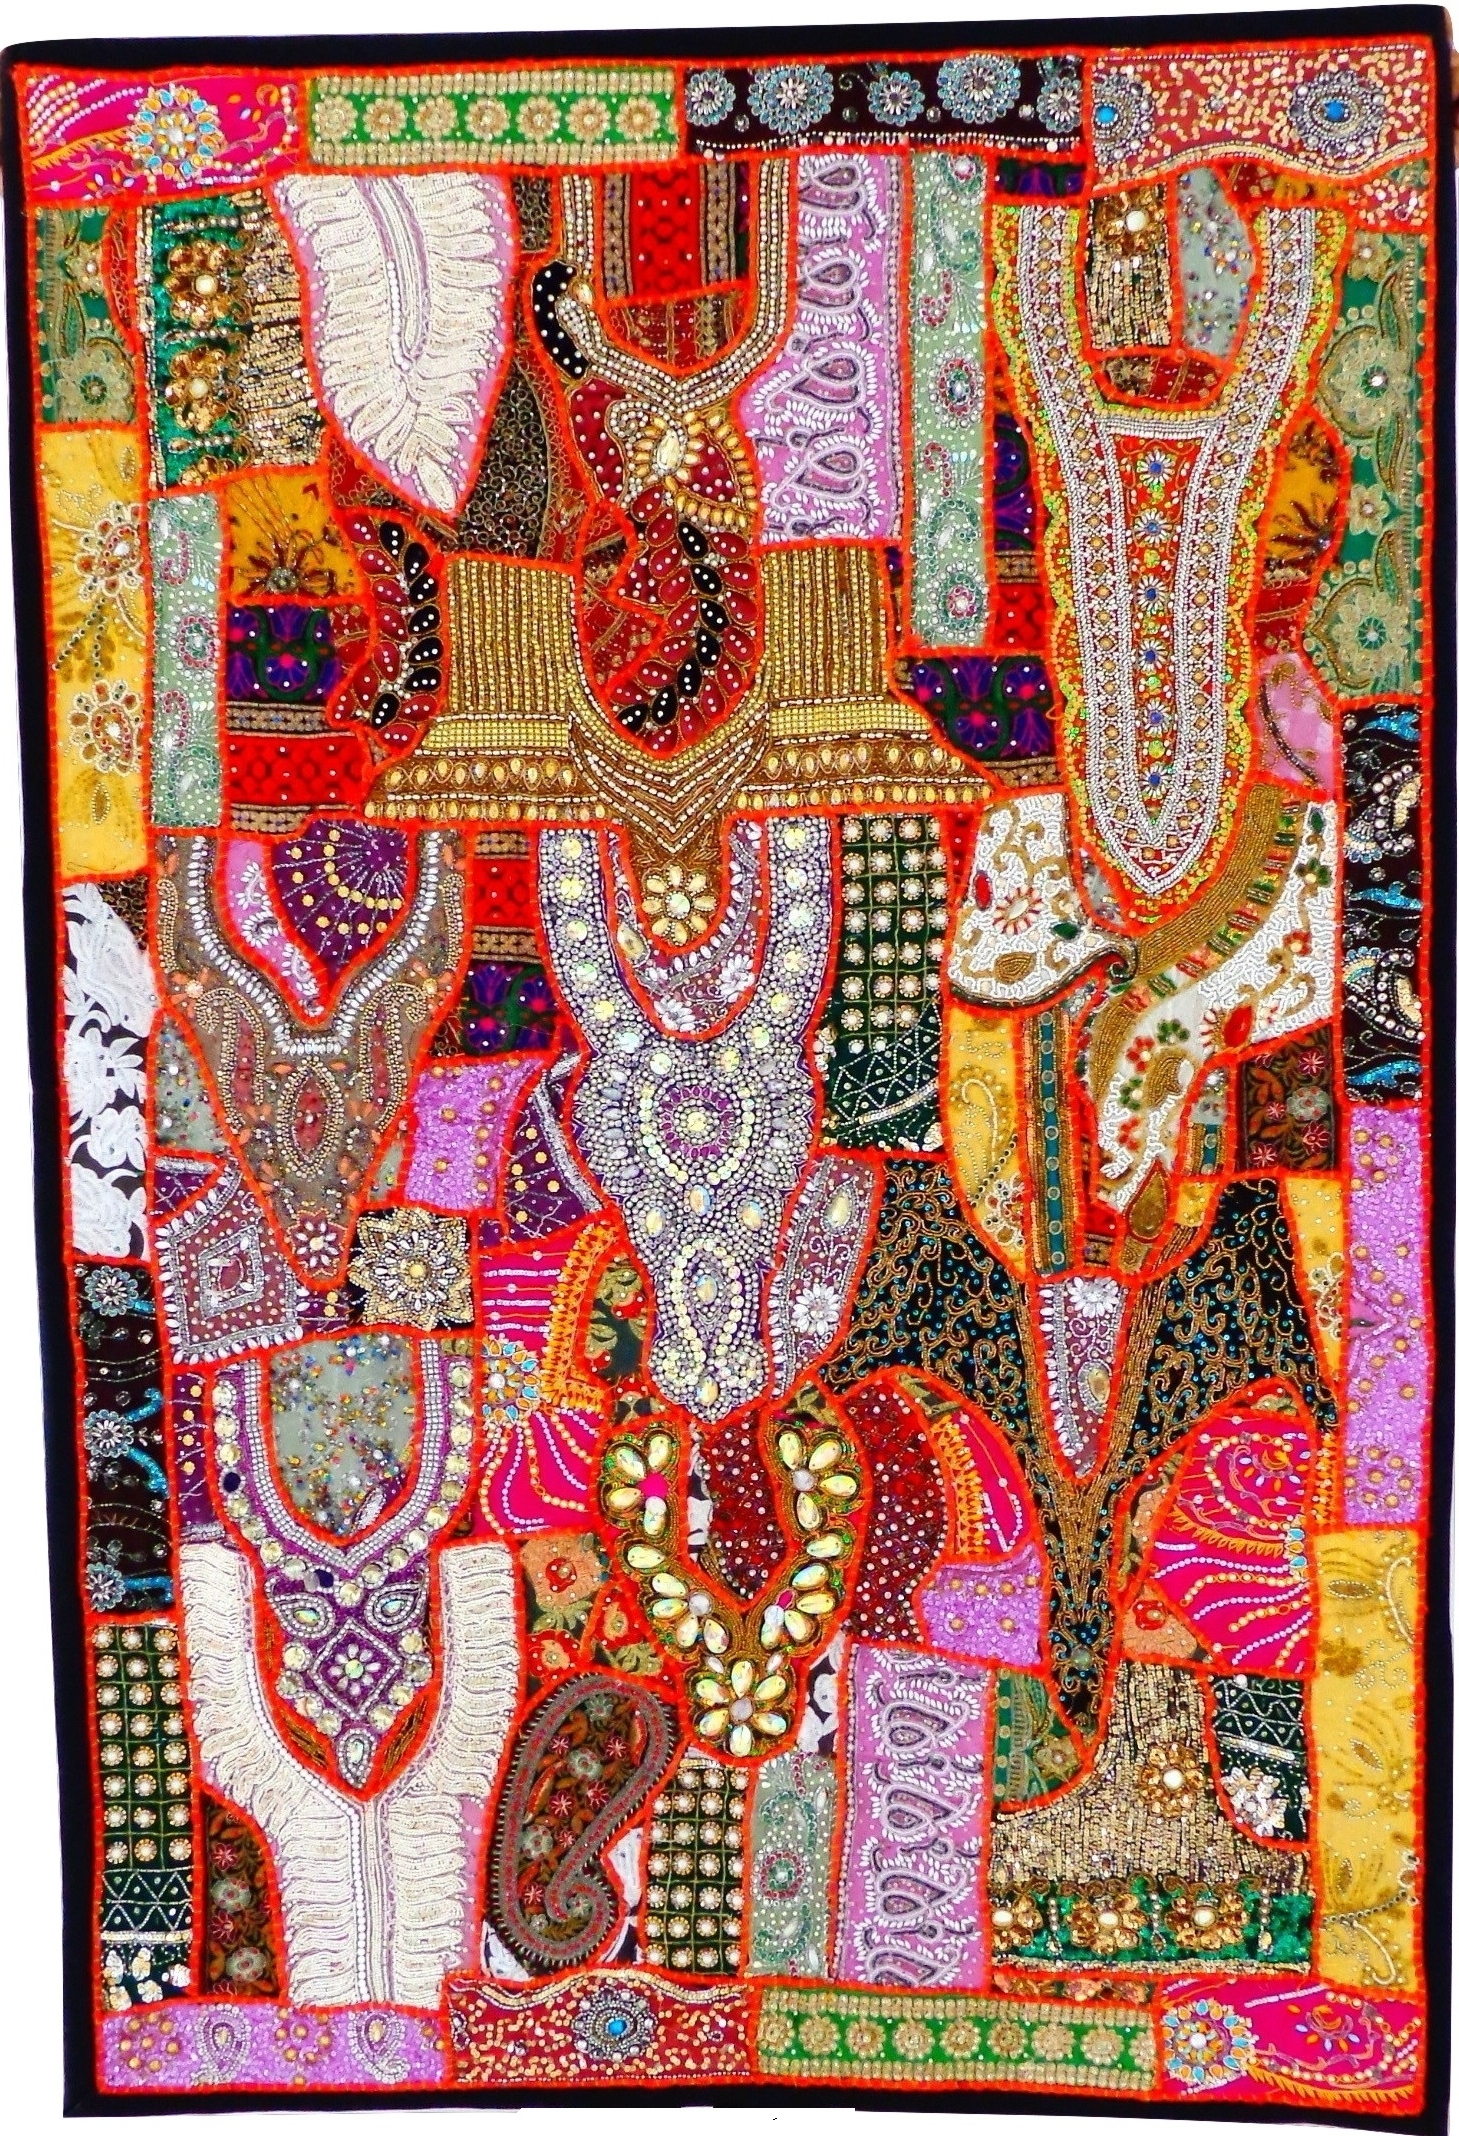 Antique Banjara Patchwork Tapestry Indian Gujarati Home Decor Wall With Regard To Well Known Handmade Textile Wall Art (Gallery 11 of 15)